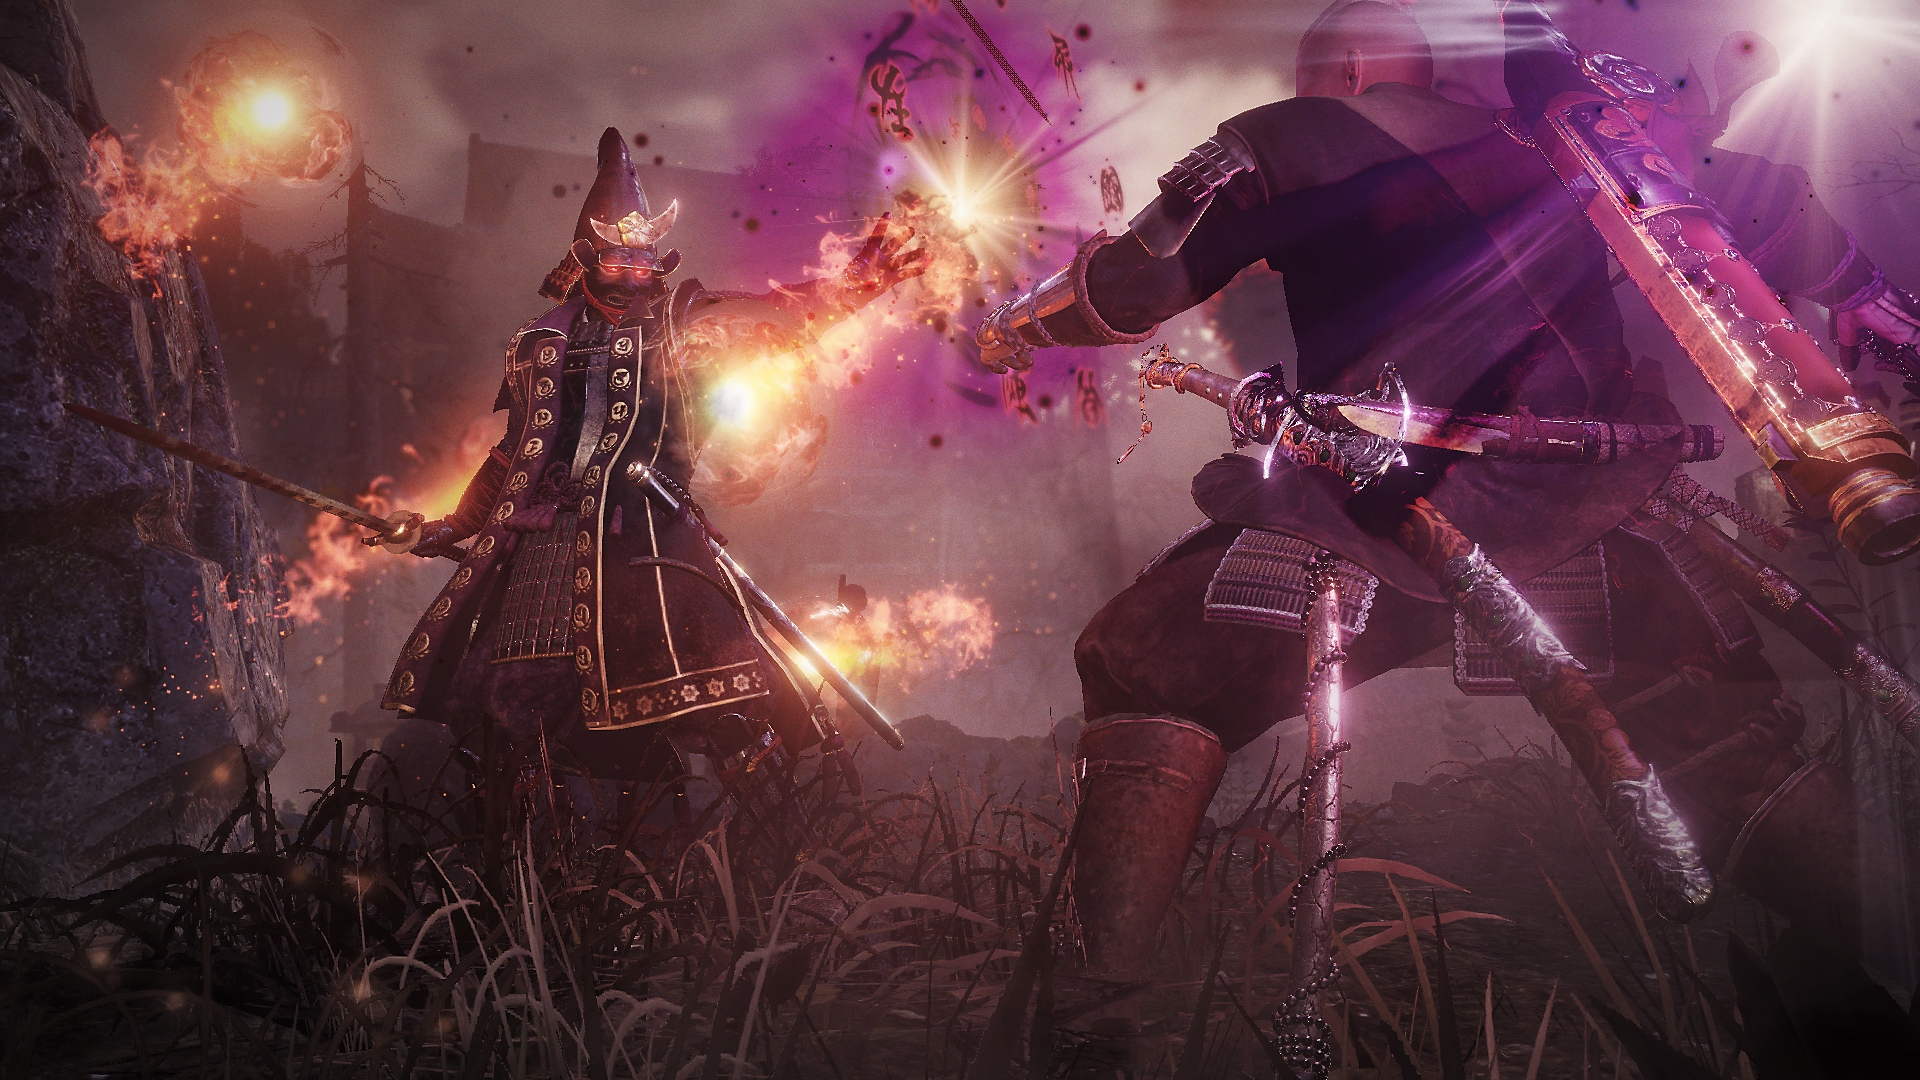 nioh 2 screenshot inner demon